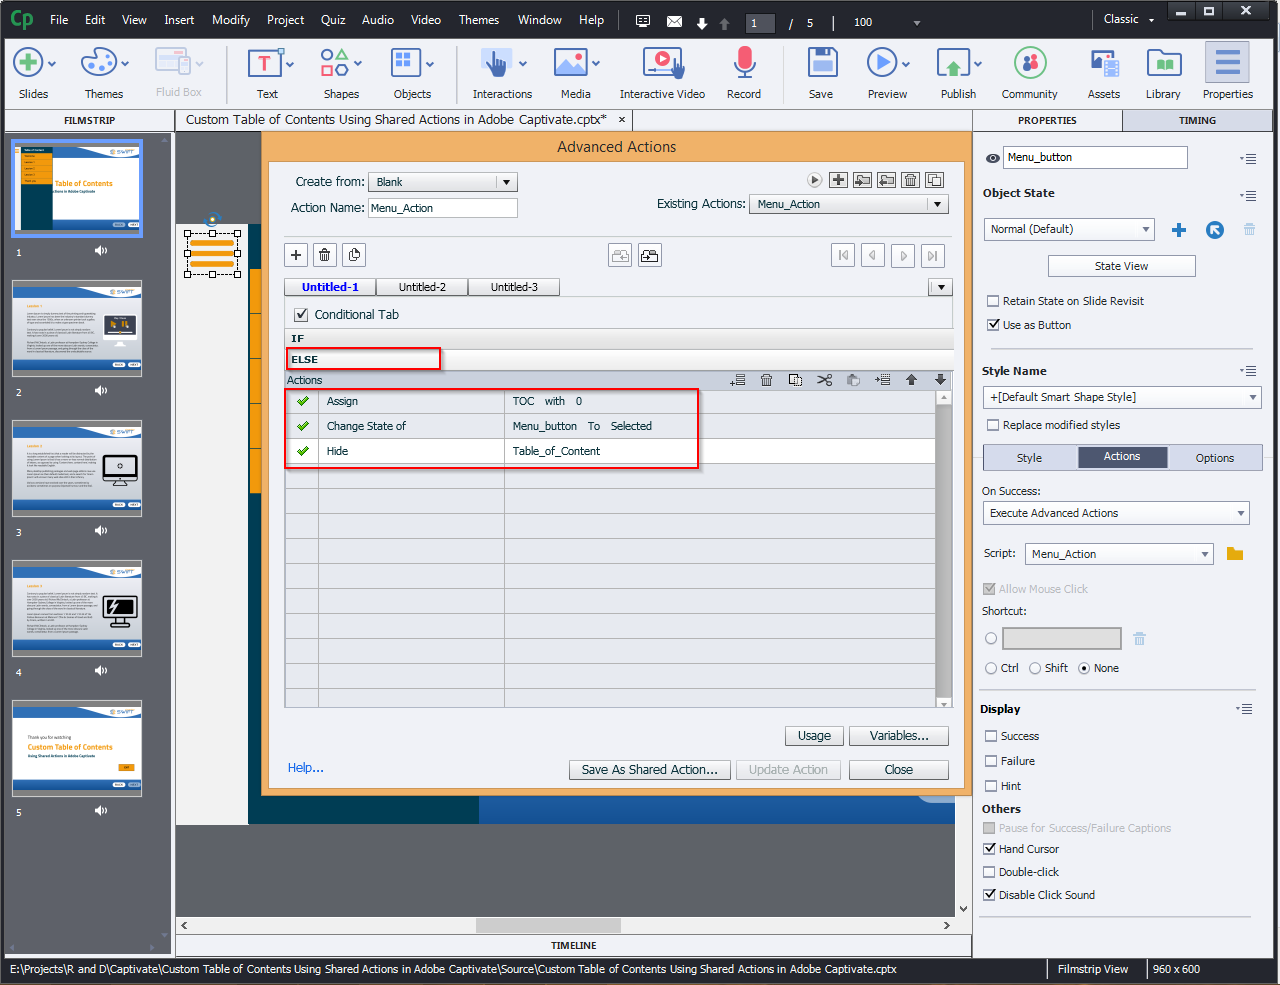 Contents Using Shared Actions in Adobe Captivate 2019 4a